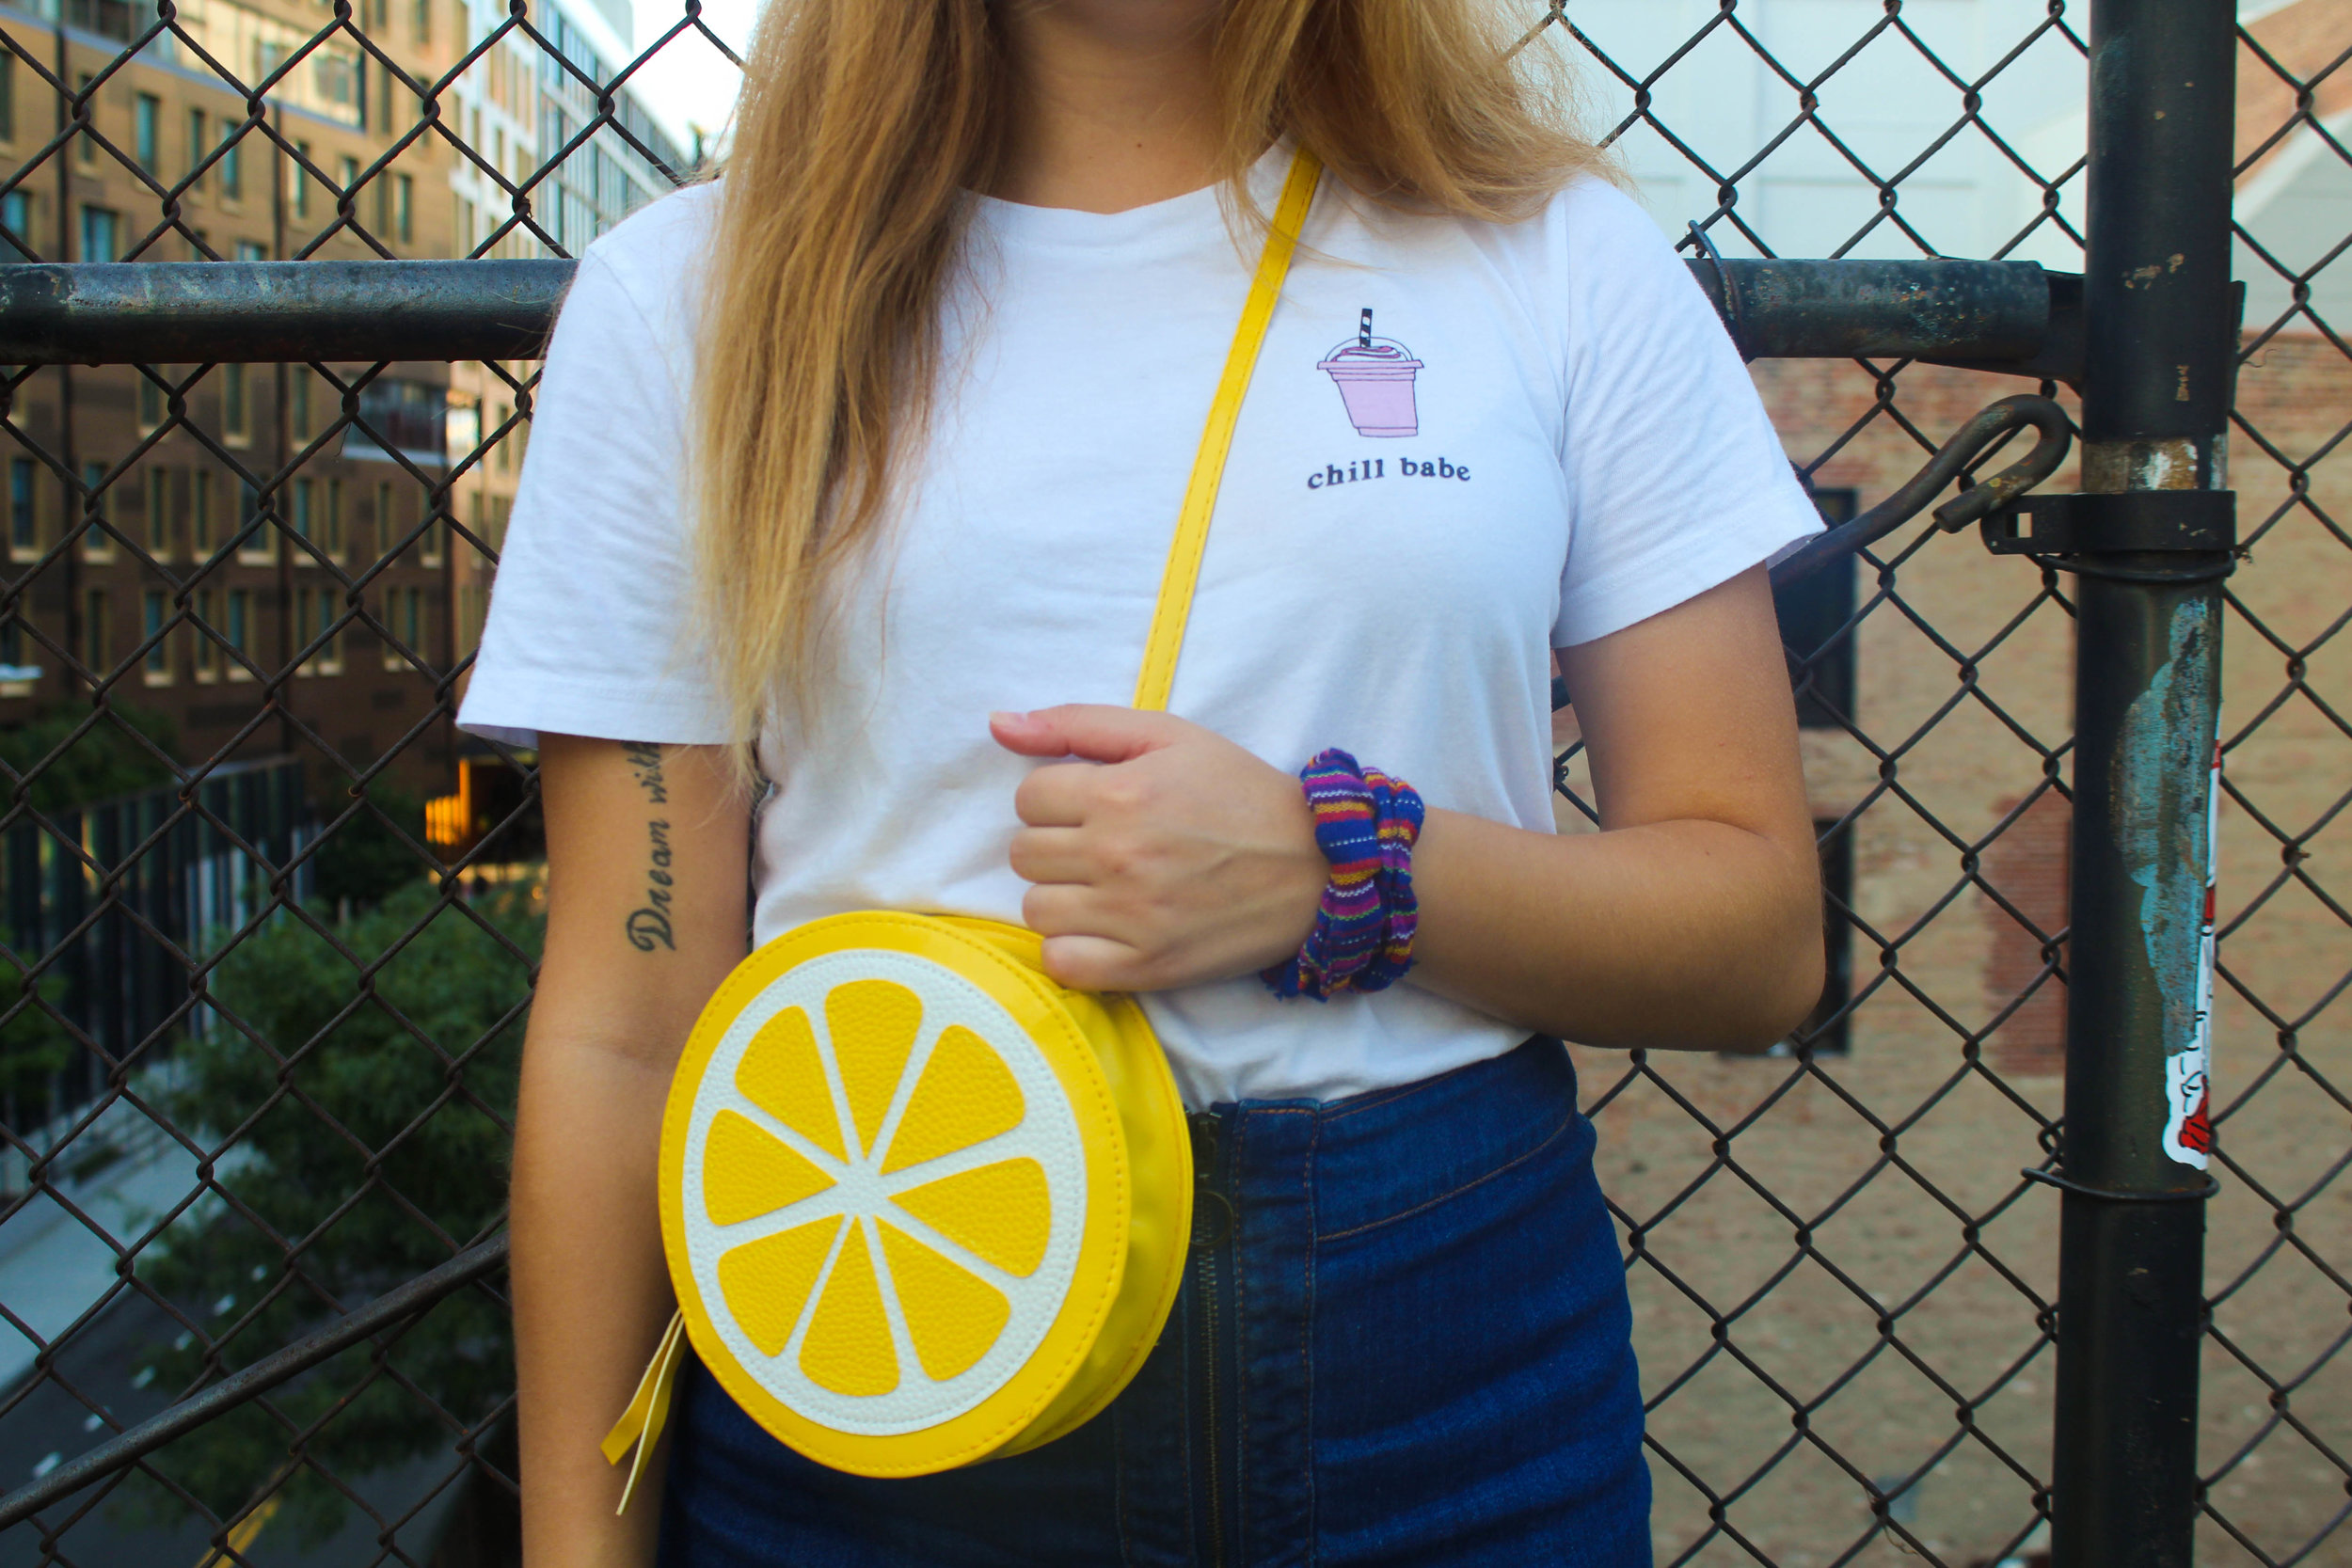 brooklyn-lemon purse-5124.jpg